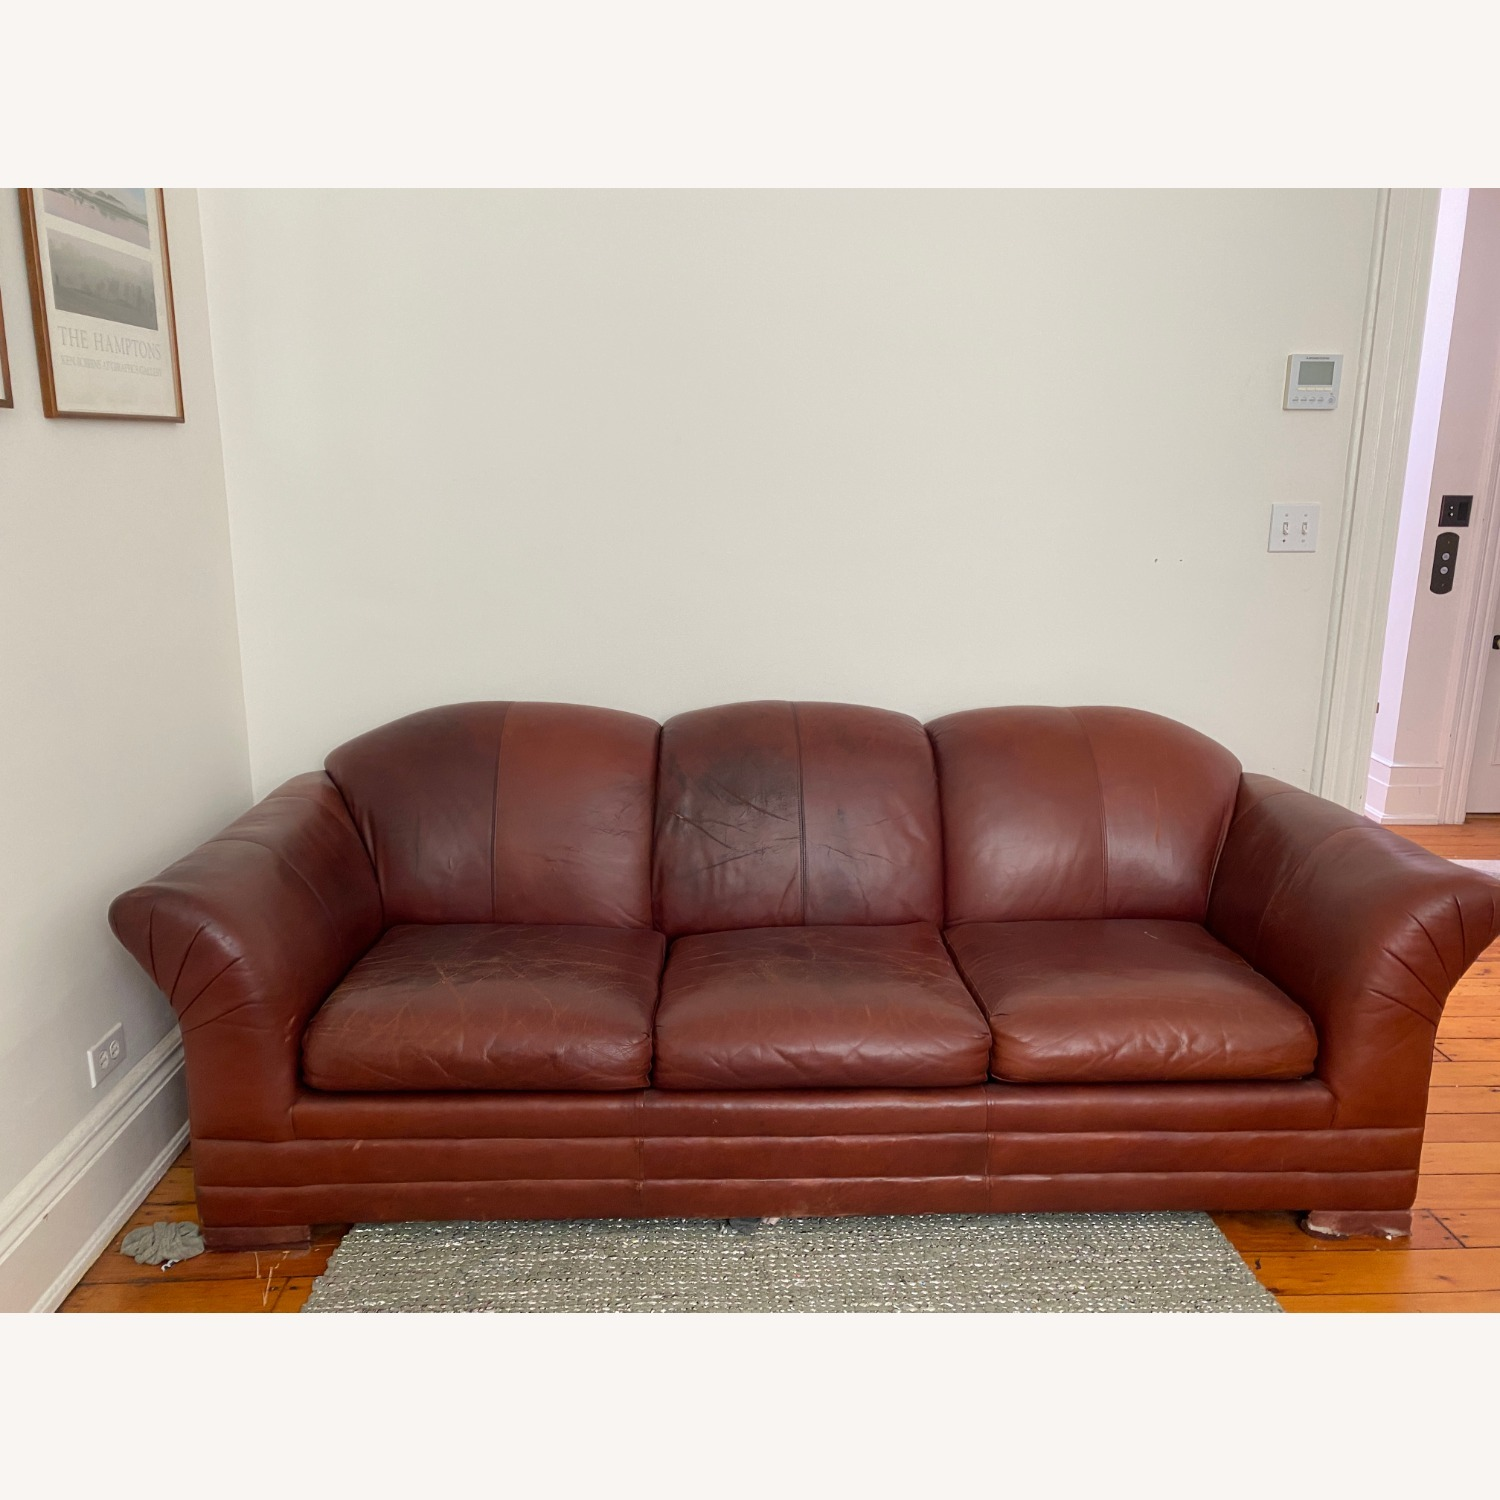 Leather 3 Seat Sleeper Sofa - image-2